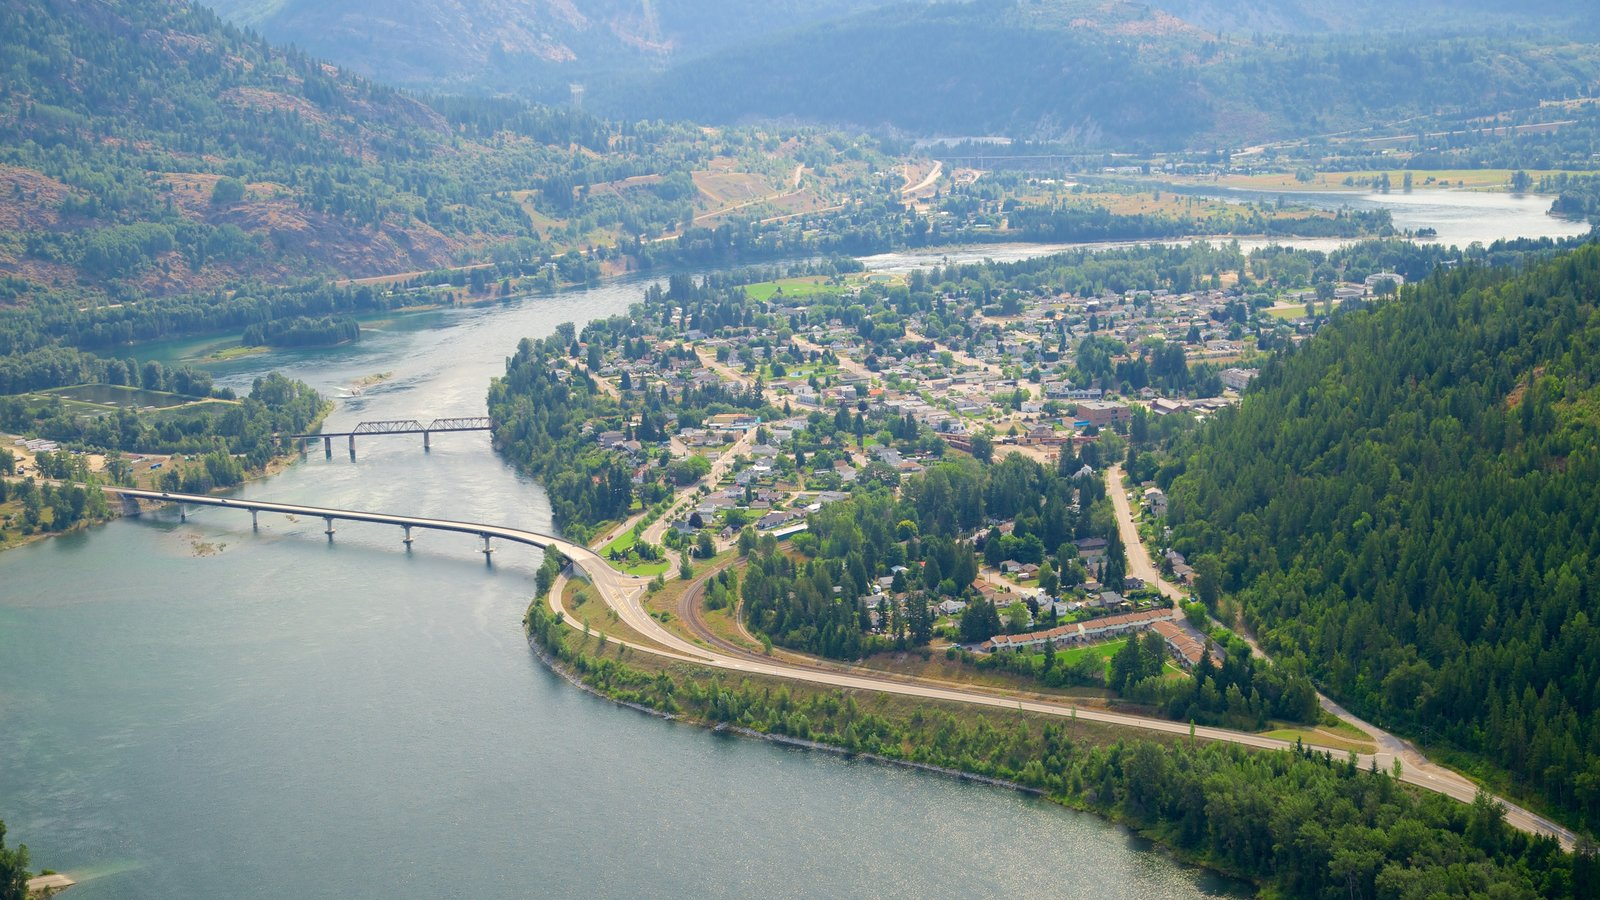 Castlegar which includes landscape views, a bridge and a small town or village